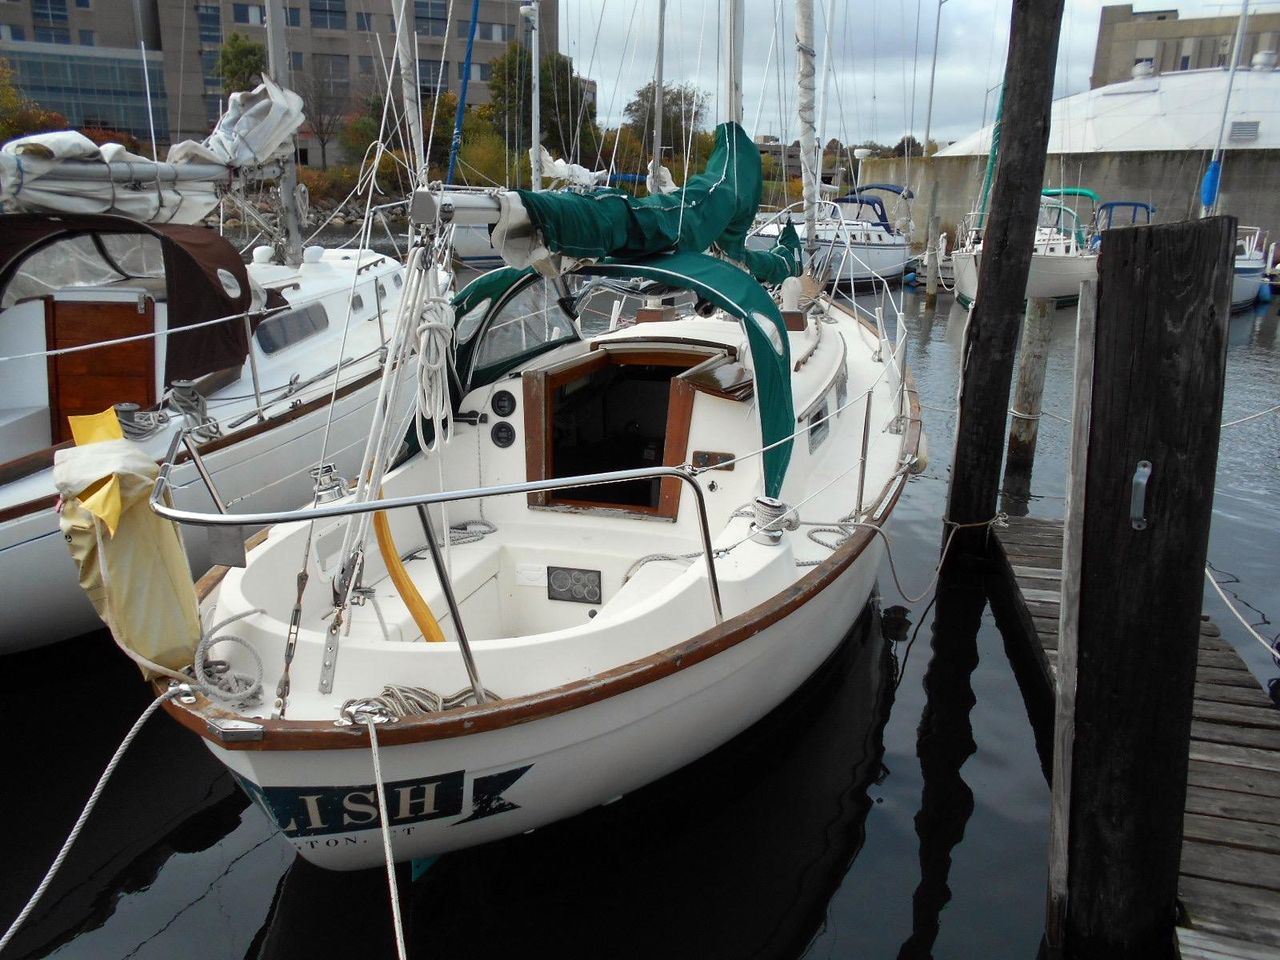 Boats For Sale In Ct >> 1980 Used Southern Cross 28 Cutter Sailboat For Sale - $12,900 - New London, CT   Moreboats.com